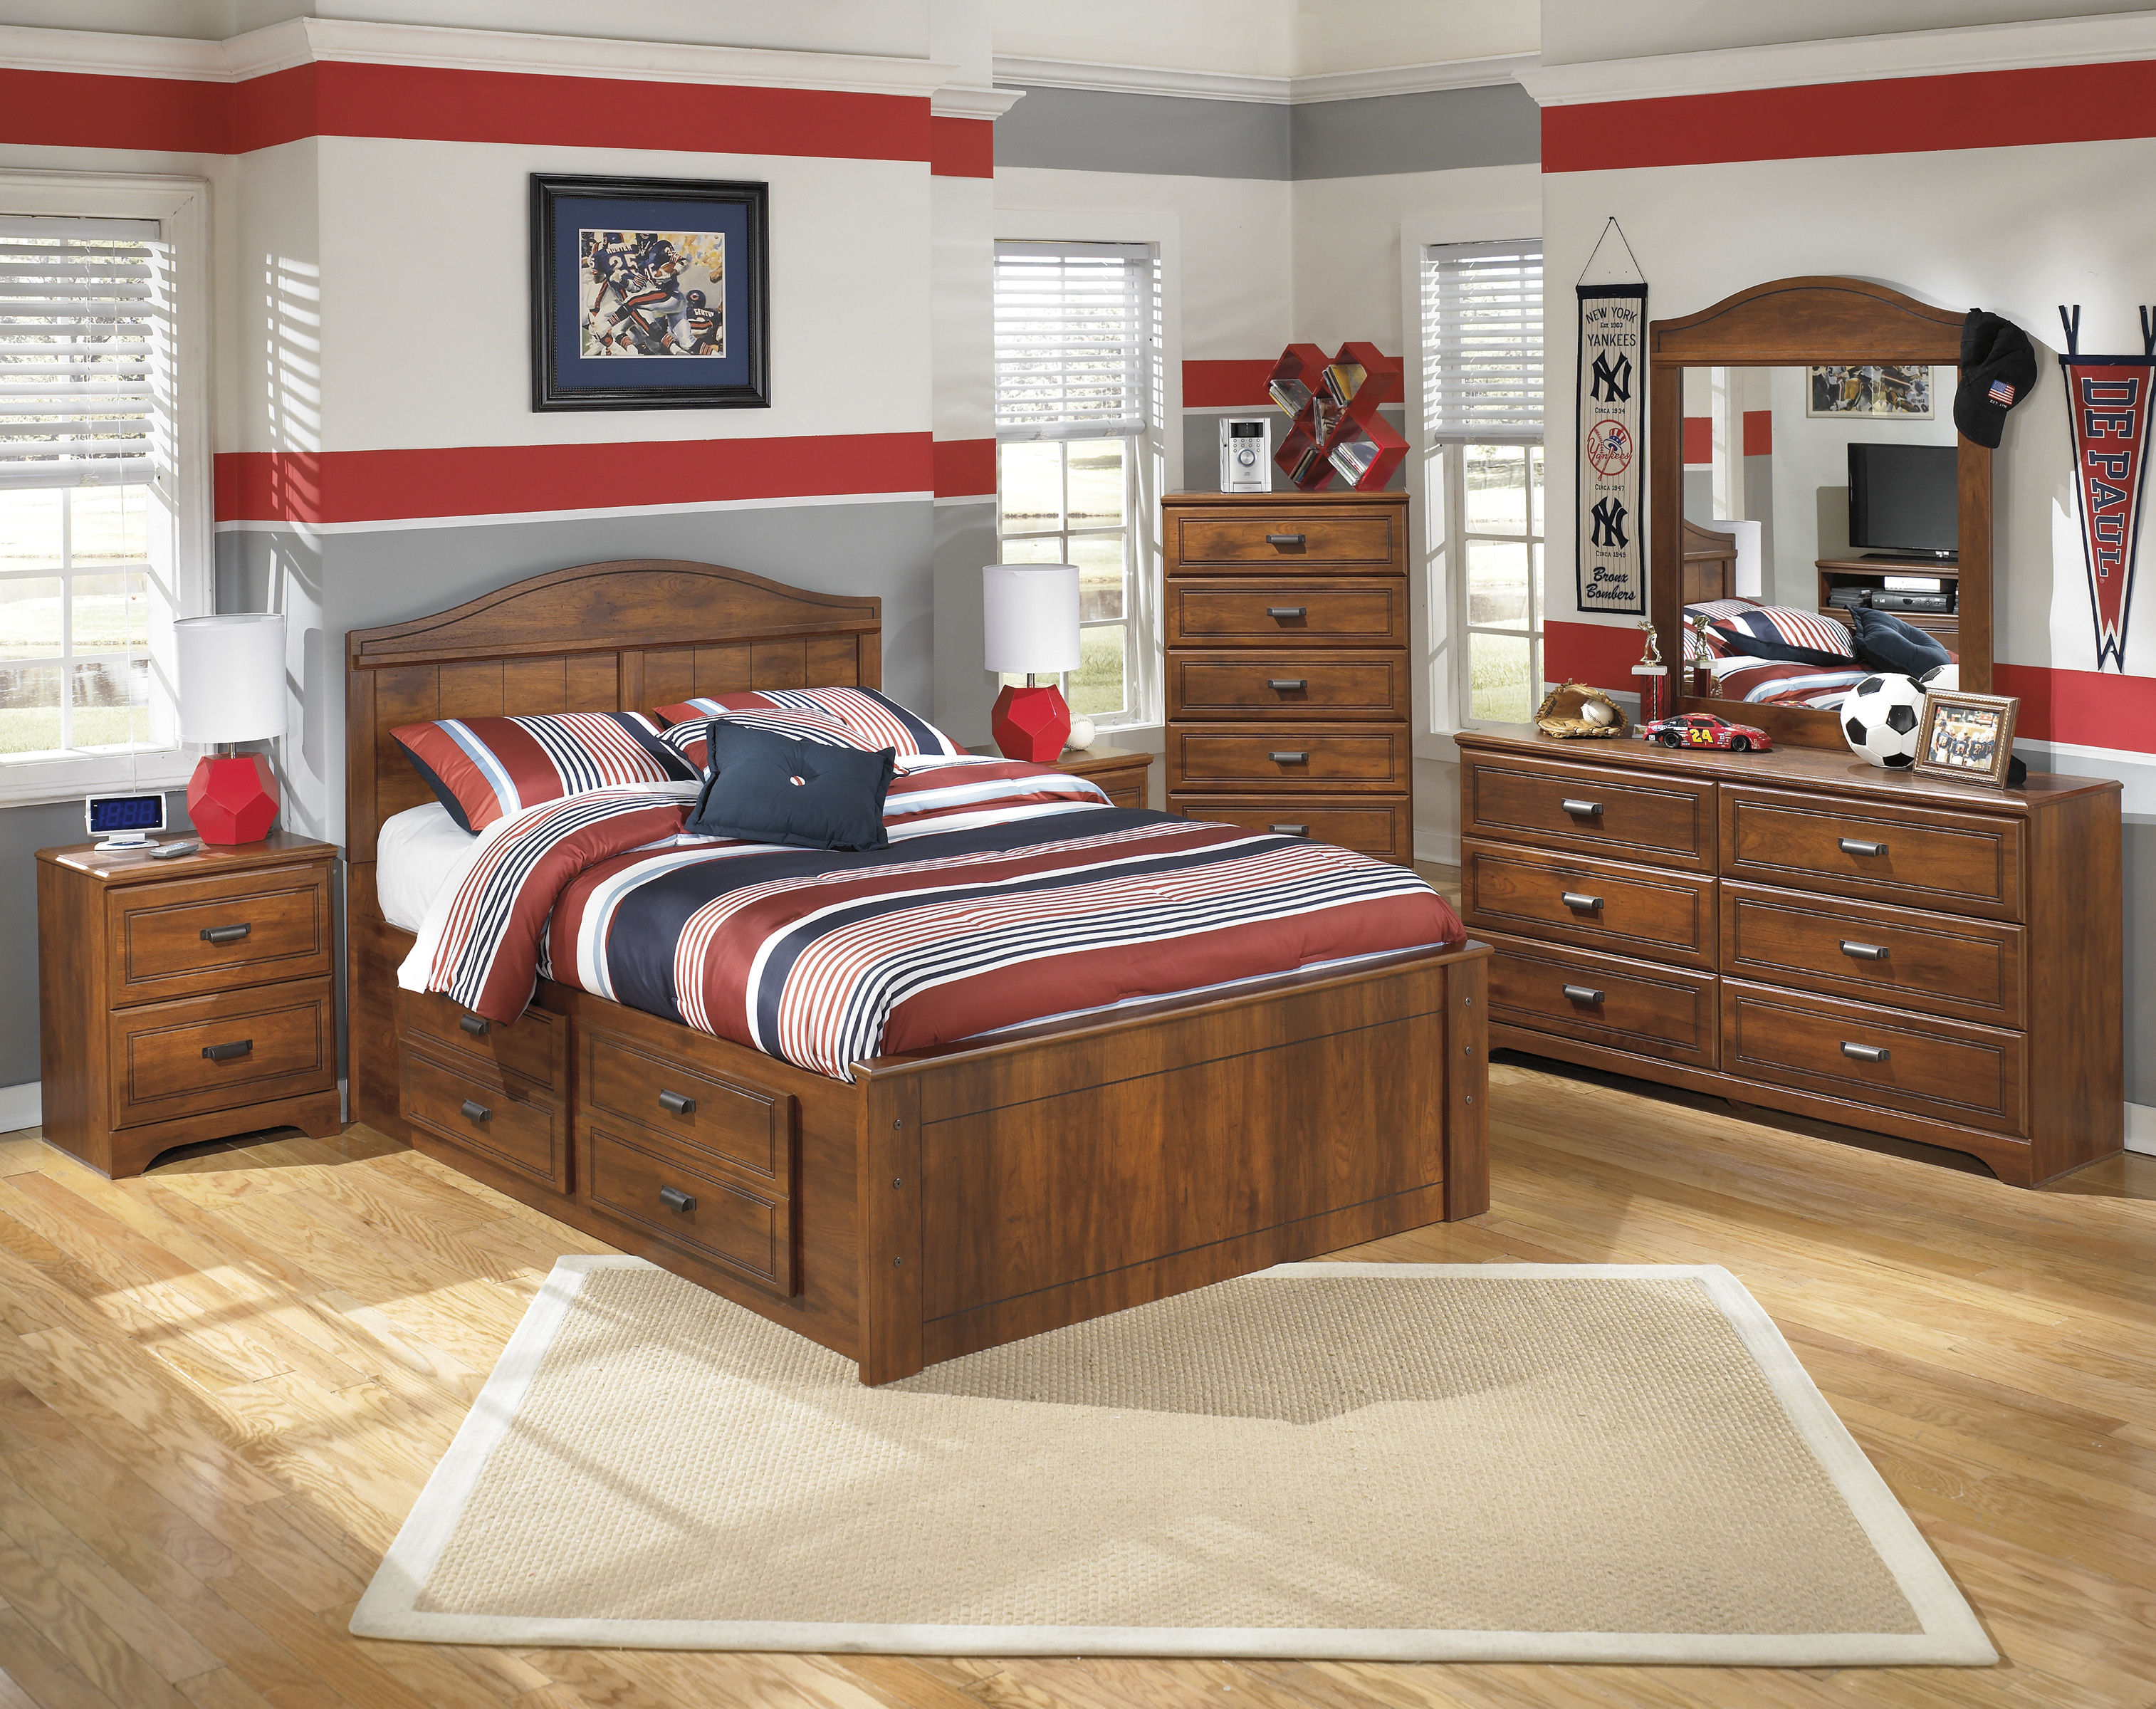 Ashley Furniture Barchan 2pc Bedroom Set With Full Under Storage Bed The Classy Home